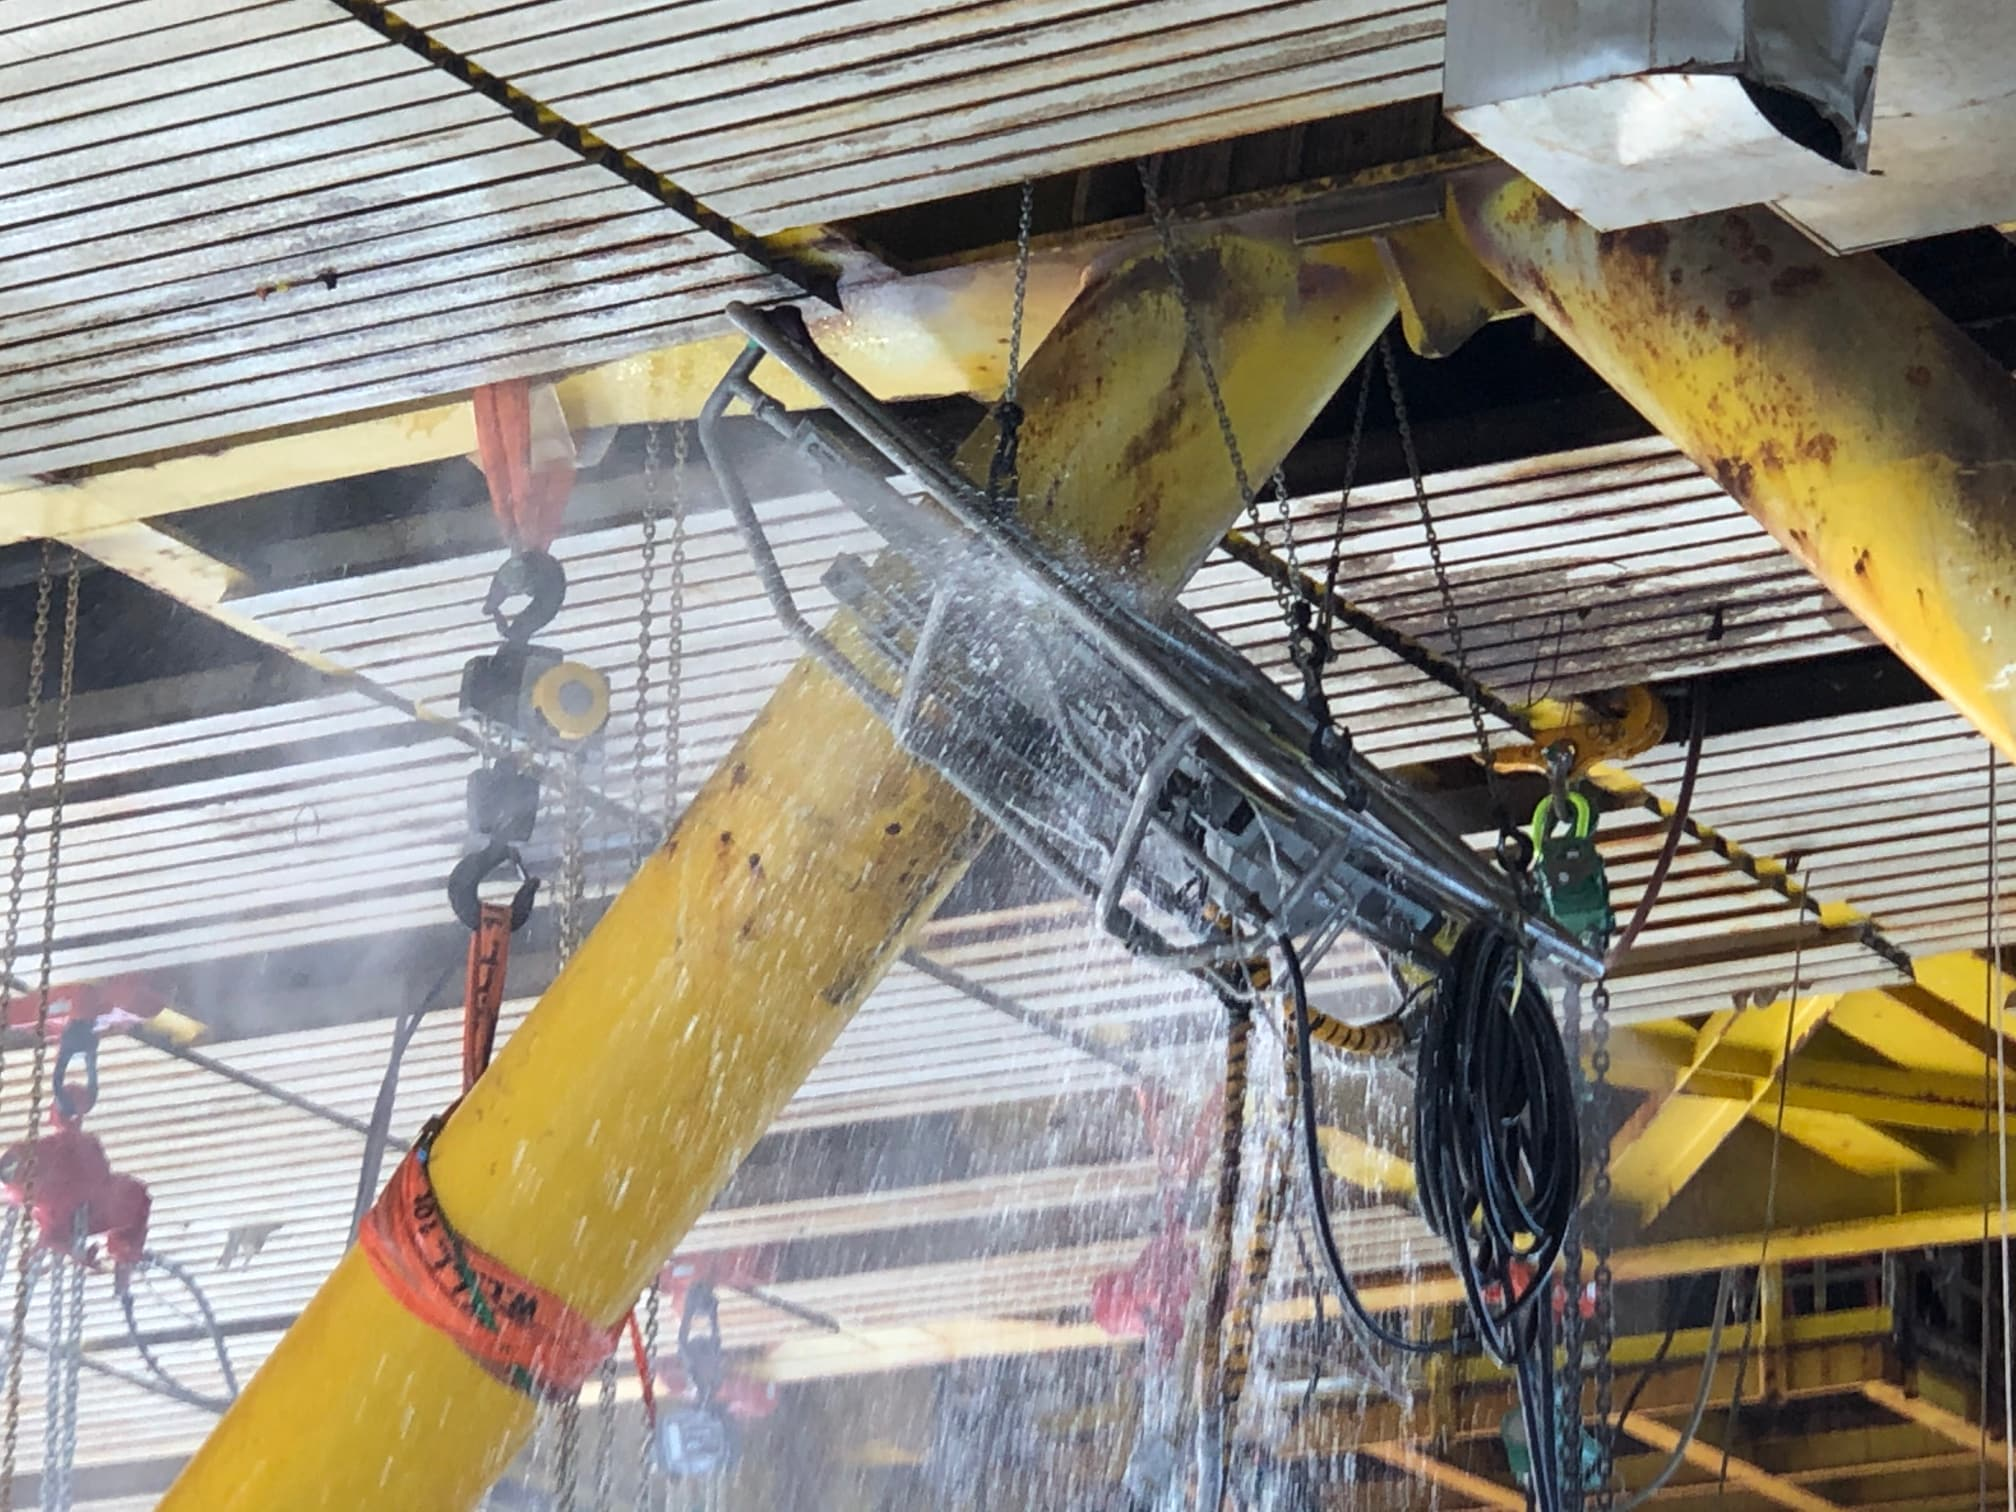 Decommissioning with diamond wire cutting